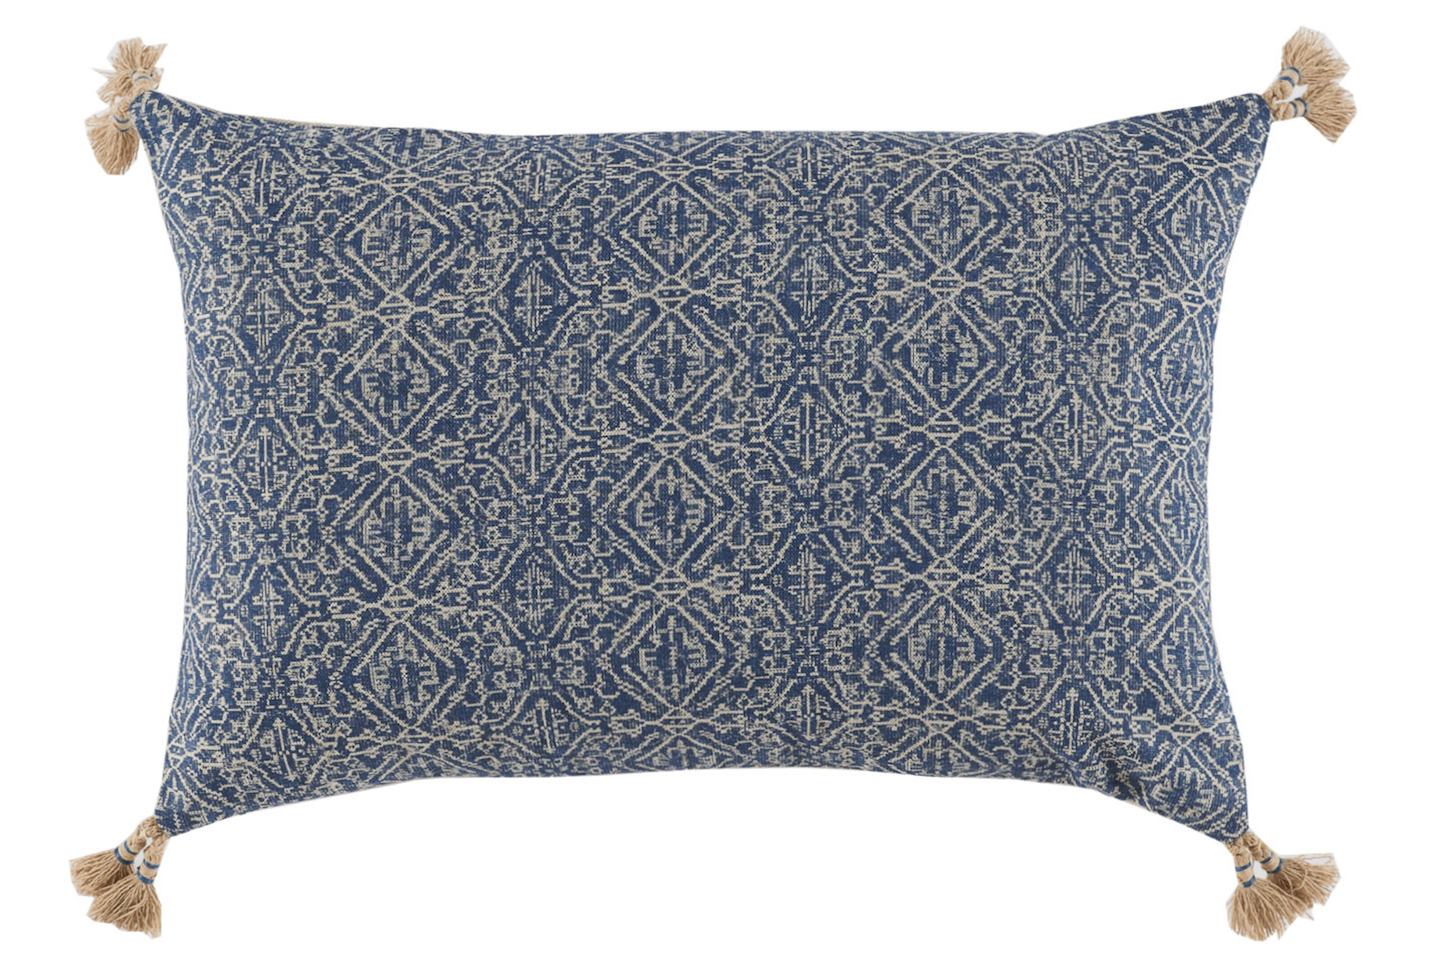 Priya India Blue Lumbar